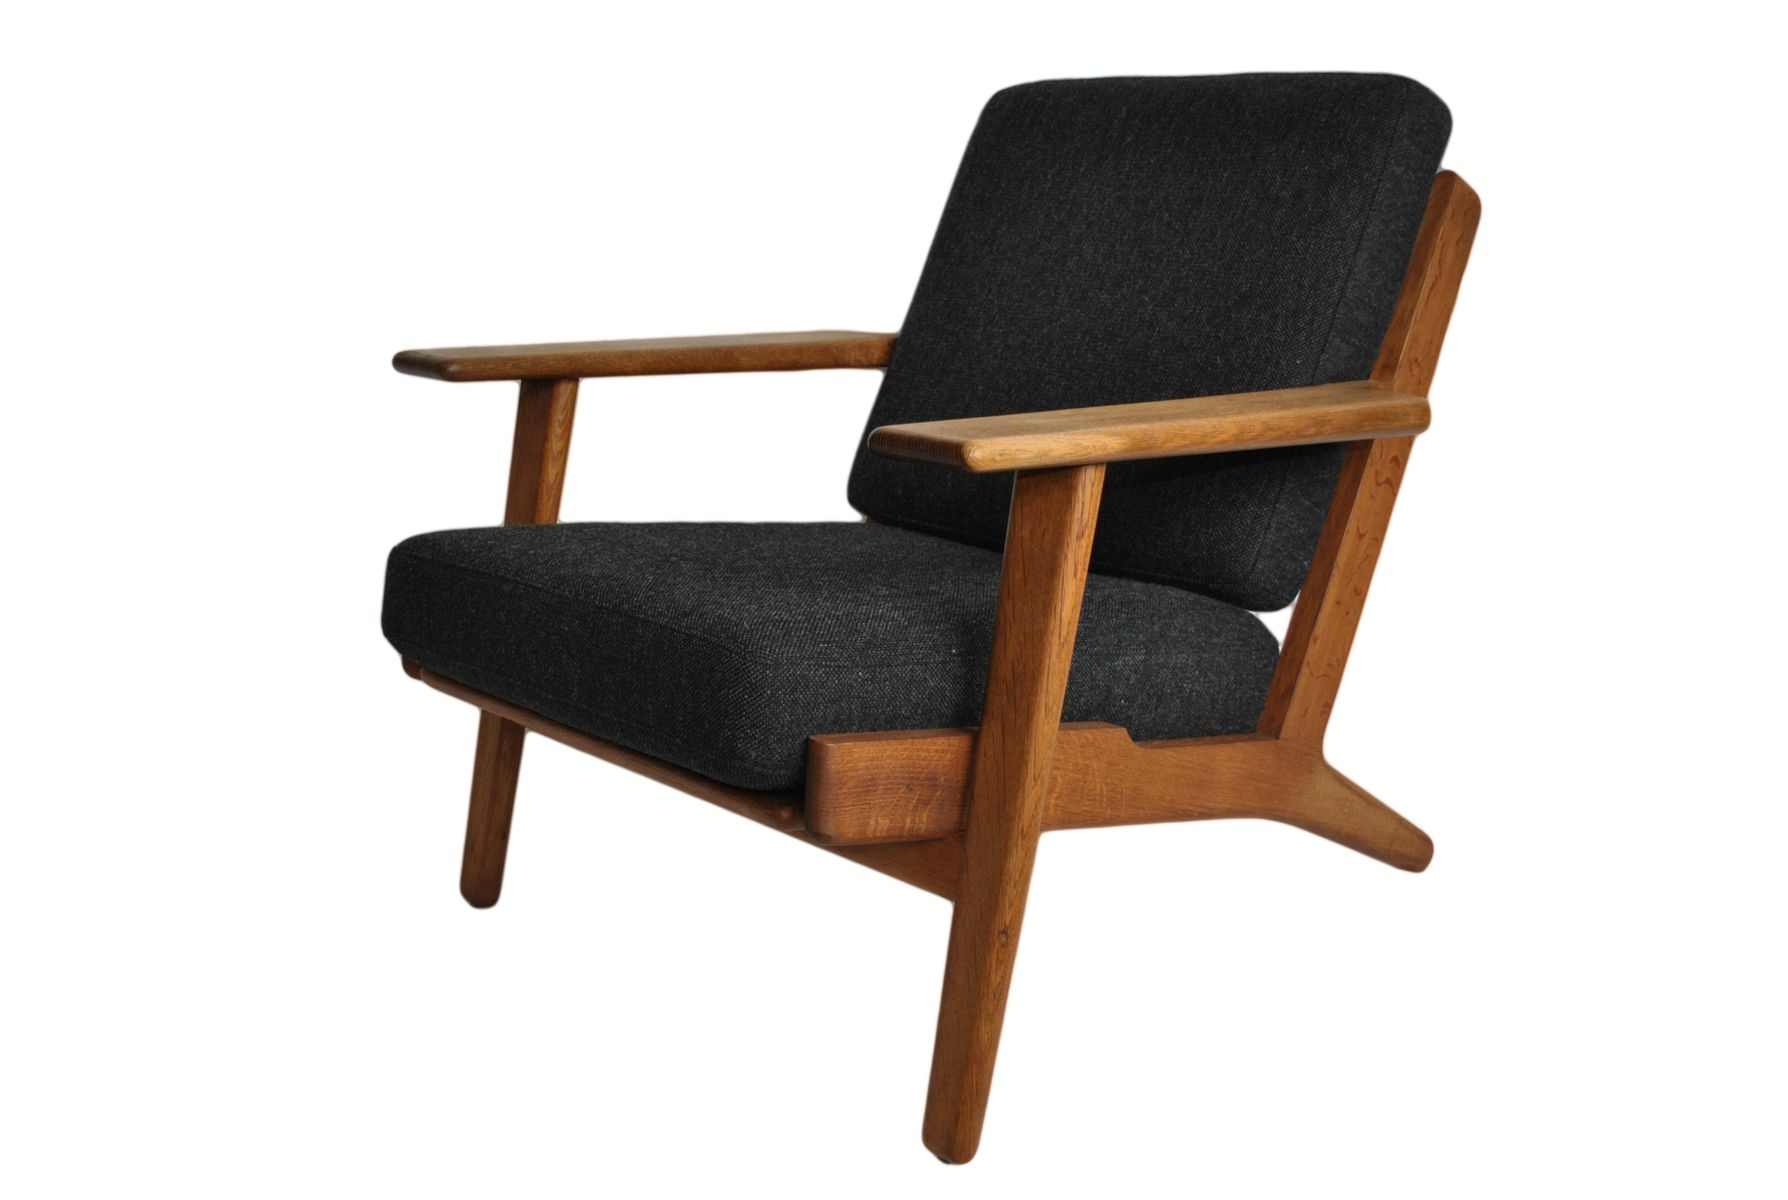 GE290 Oak Lounge Chair By Hans Wegner For Getama 1950s For Sale At Pamono